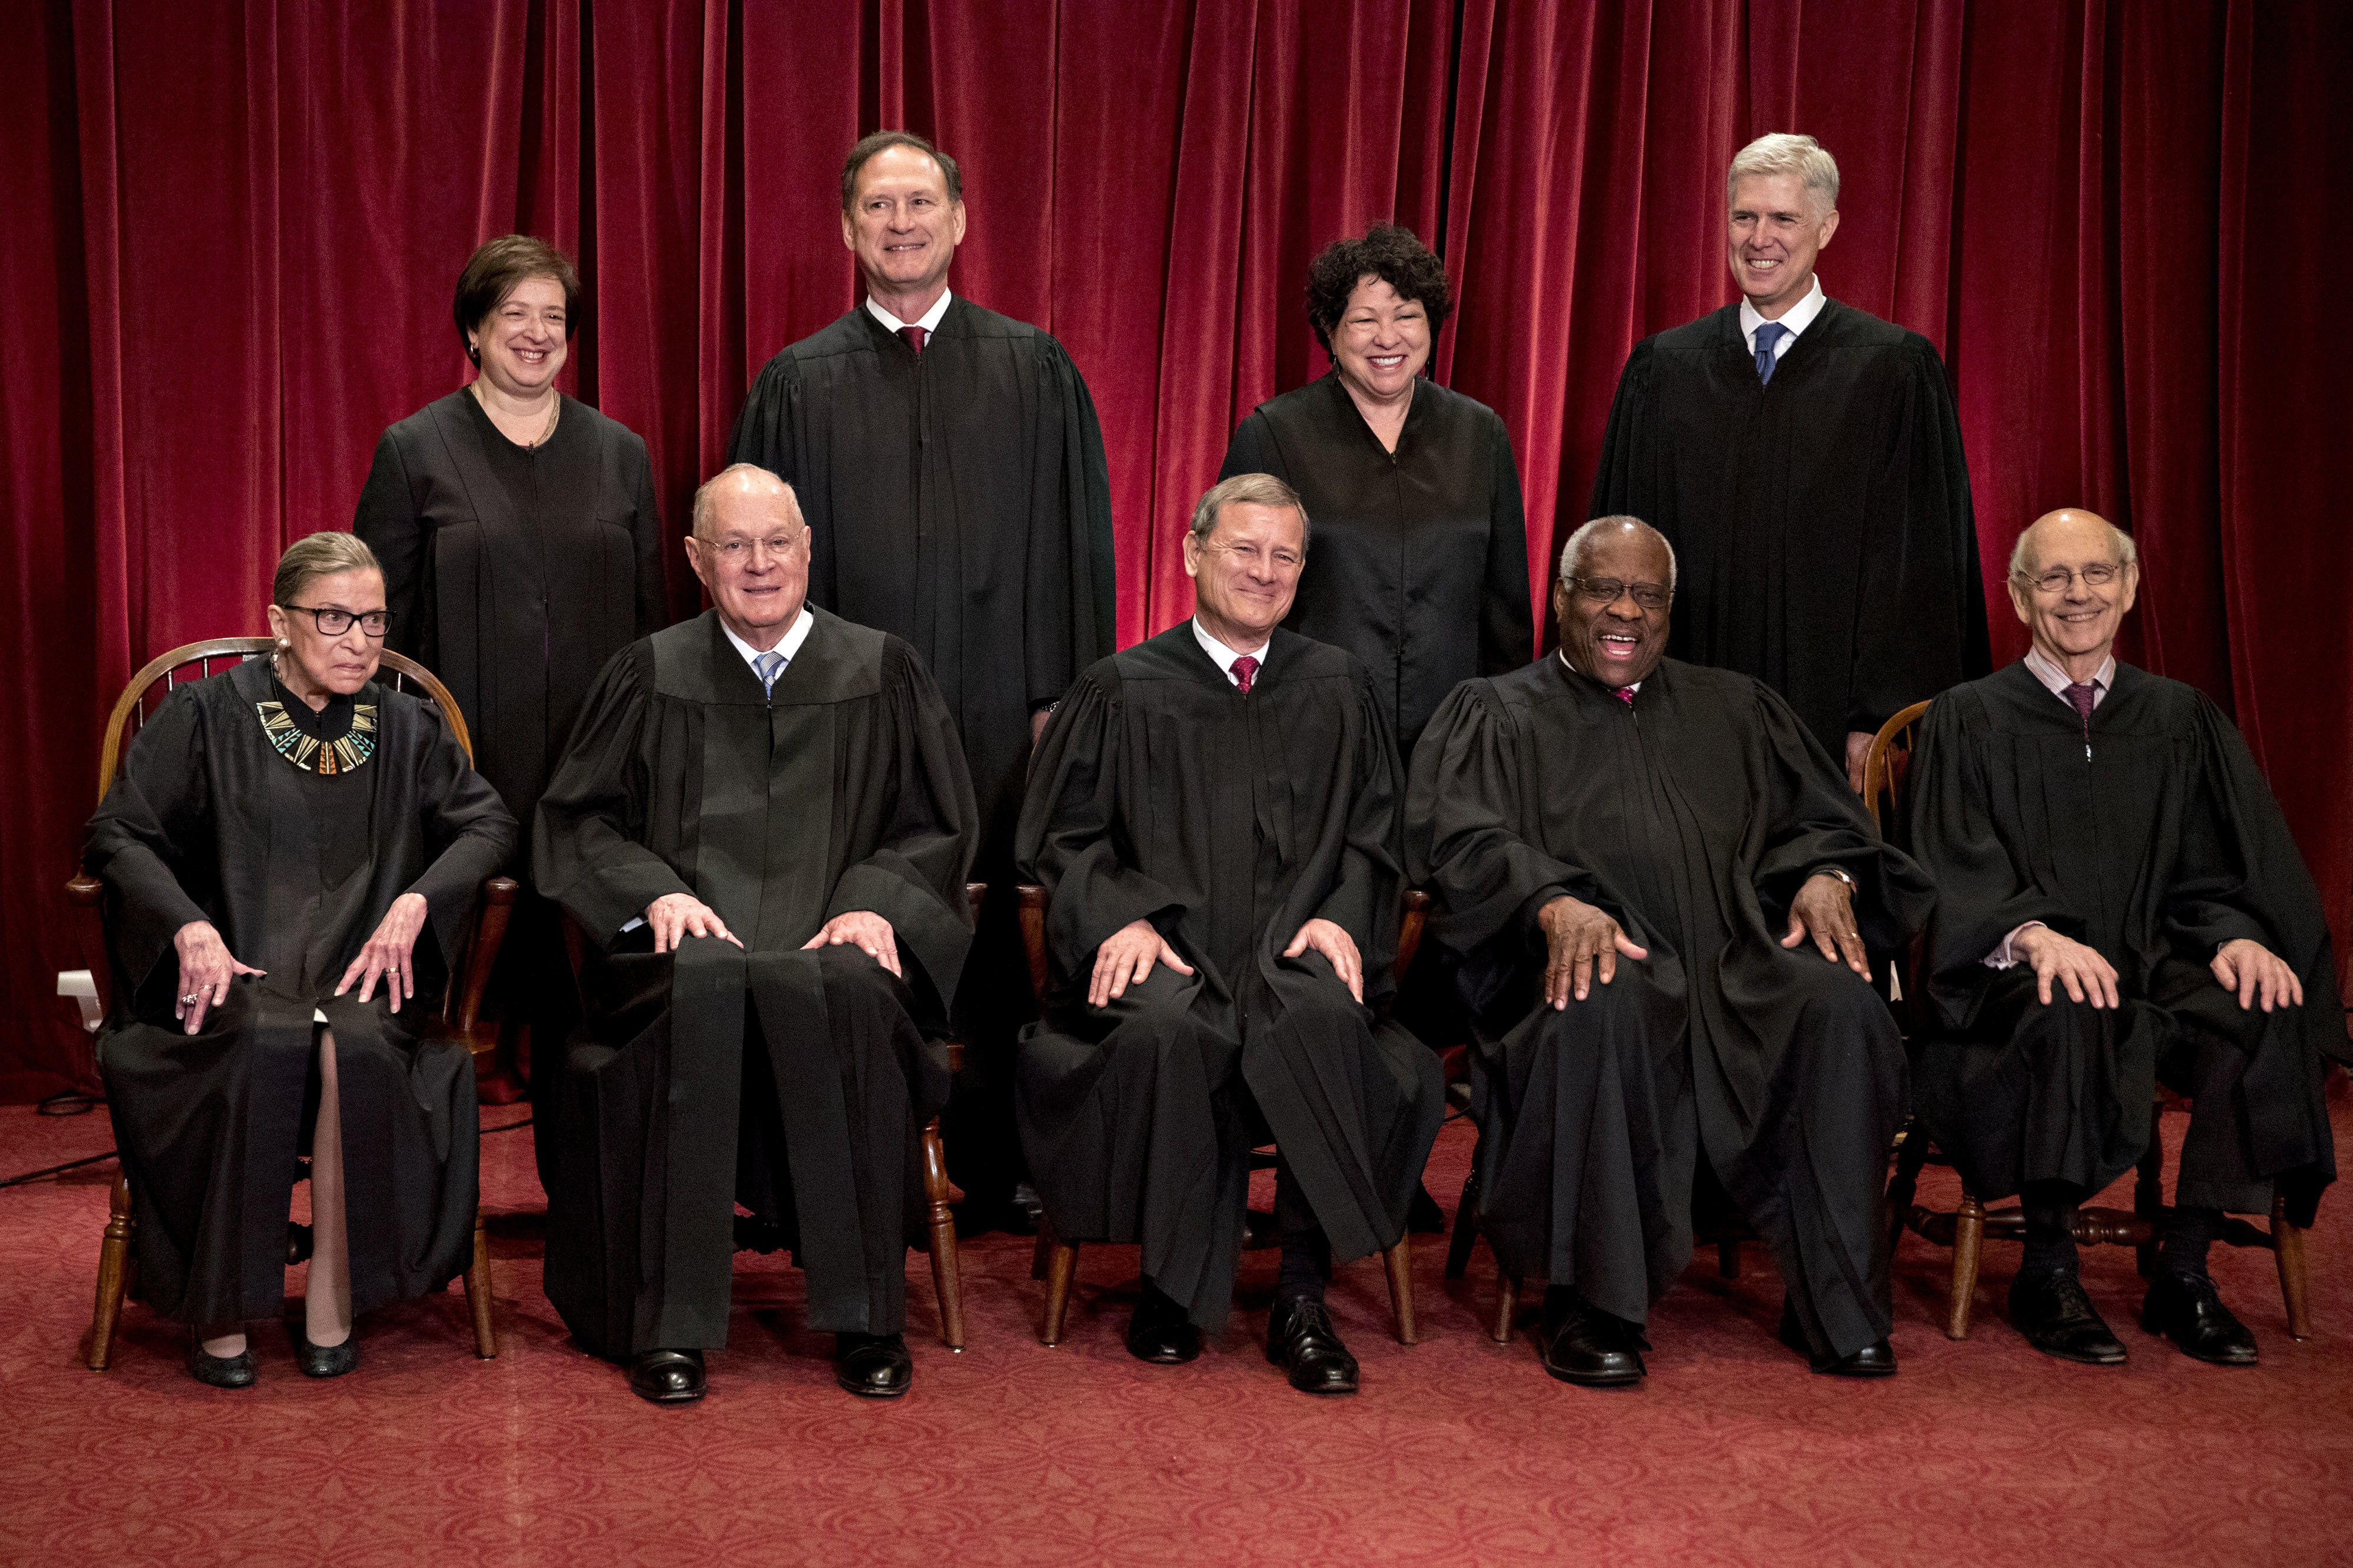 Bloomberg Best of the Year 2017: Justices of the U.S. Supreme Court pose for a formal group photograph in the East Conference Room of the Supreme Court, seated left to right, Associate Justice Ruth Bader Ginsburg, Associate Justice Anthony Kennedy, Chief Justice John Roberts, Associate Justice Clarence Thomas, Associate Justice Stephen Breyer, and standing left to right, Associate Justice Elena Kagan, Associate Justice Samuel Alito Jr., Associate Justice Sonia Sotomayor, and Associate Justice Neil Gorsuch in Washington, D.C., U.S., on Thursday, June 1, 2017. Photographer: Andrew Harrer/Bloomberg via Getty Images